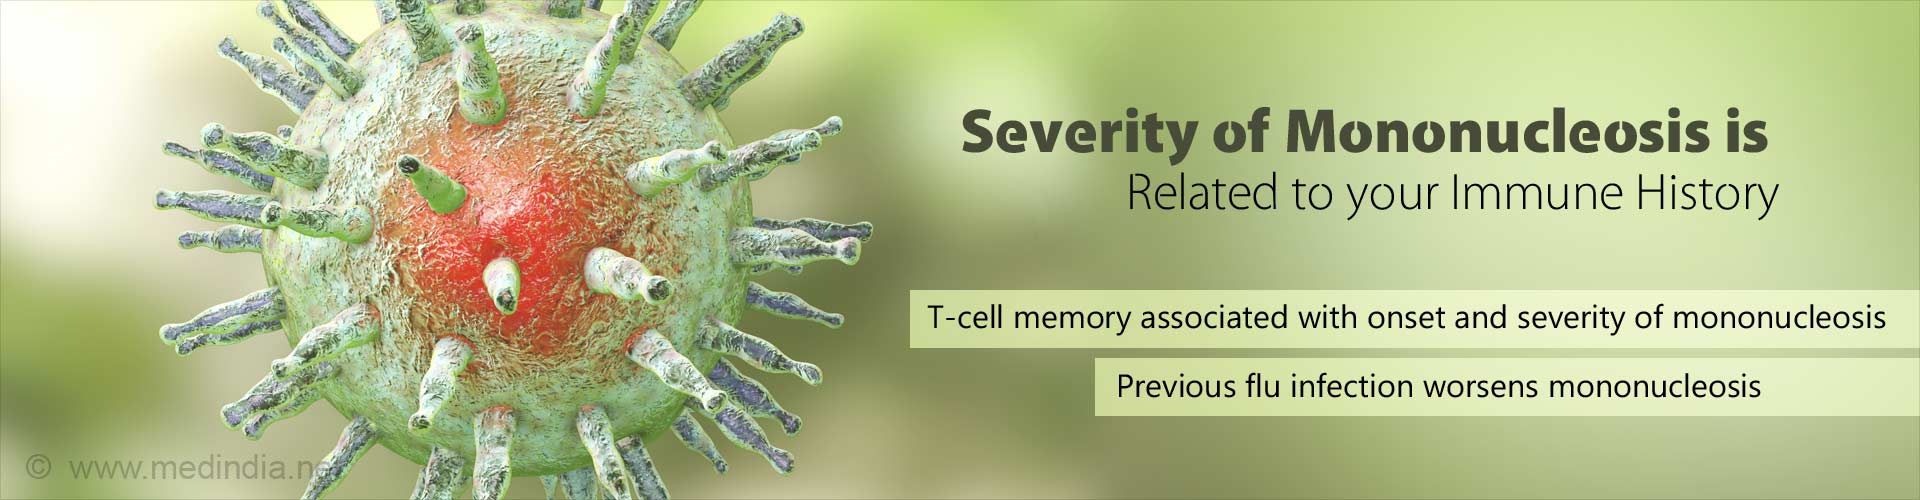 T-cell MMemory and Receptors DDetermine SSeverity of Mononucleosis (Kissing Disease)